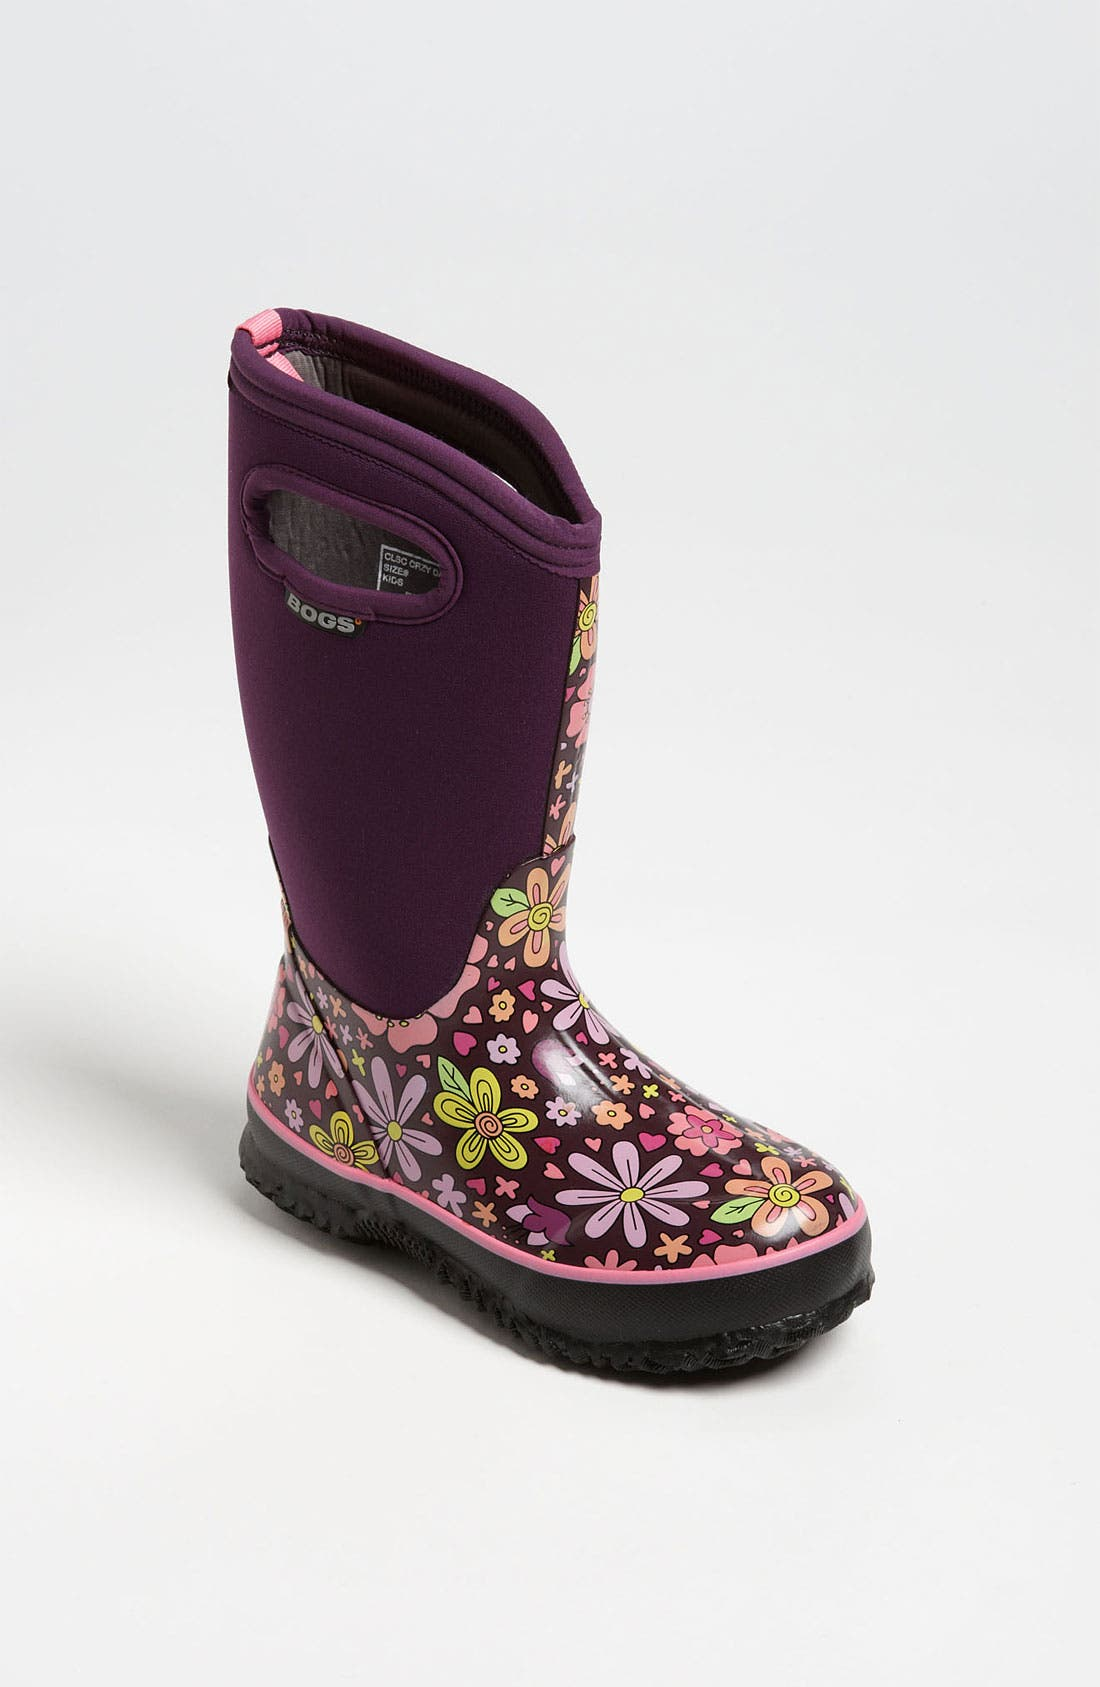 Main Image - Bogs 'Classic High Crazy Daisy' Snow Boot (Toddler, Little Kid & Big Kid)